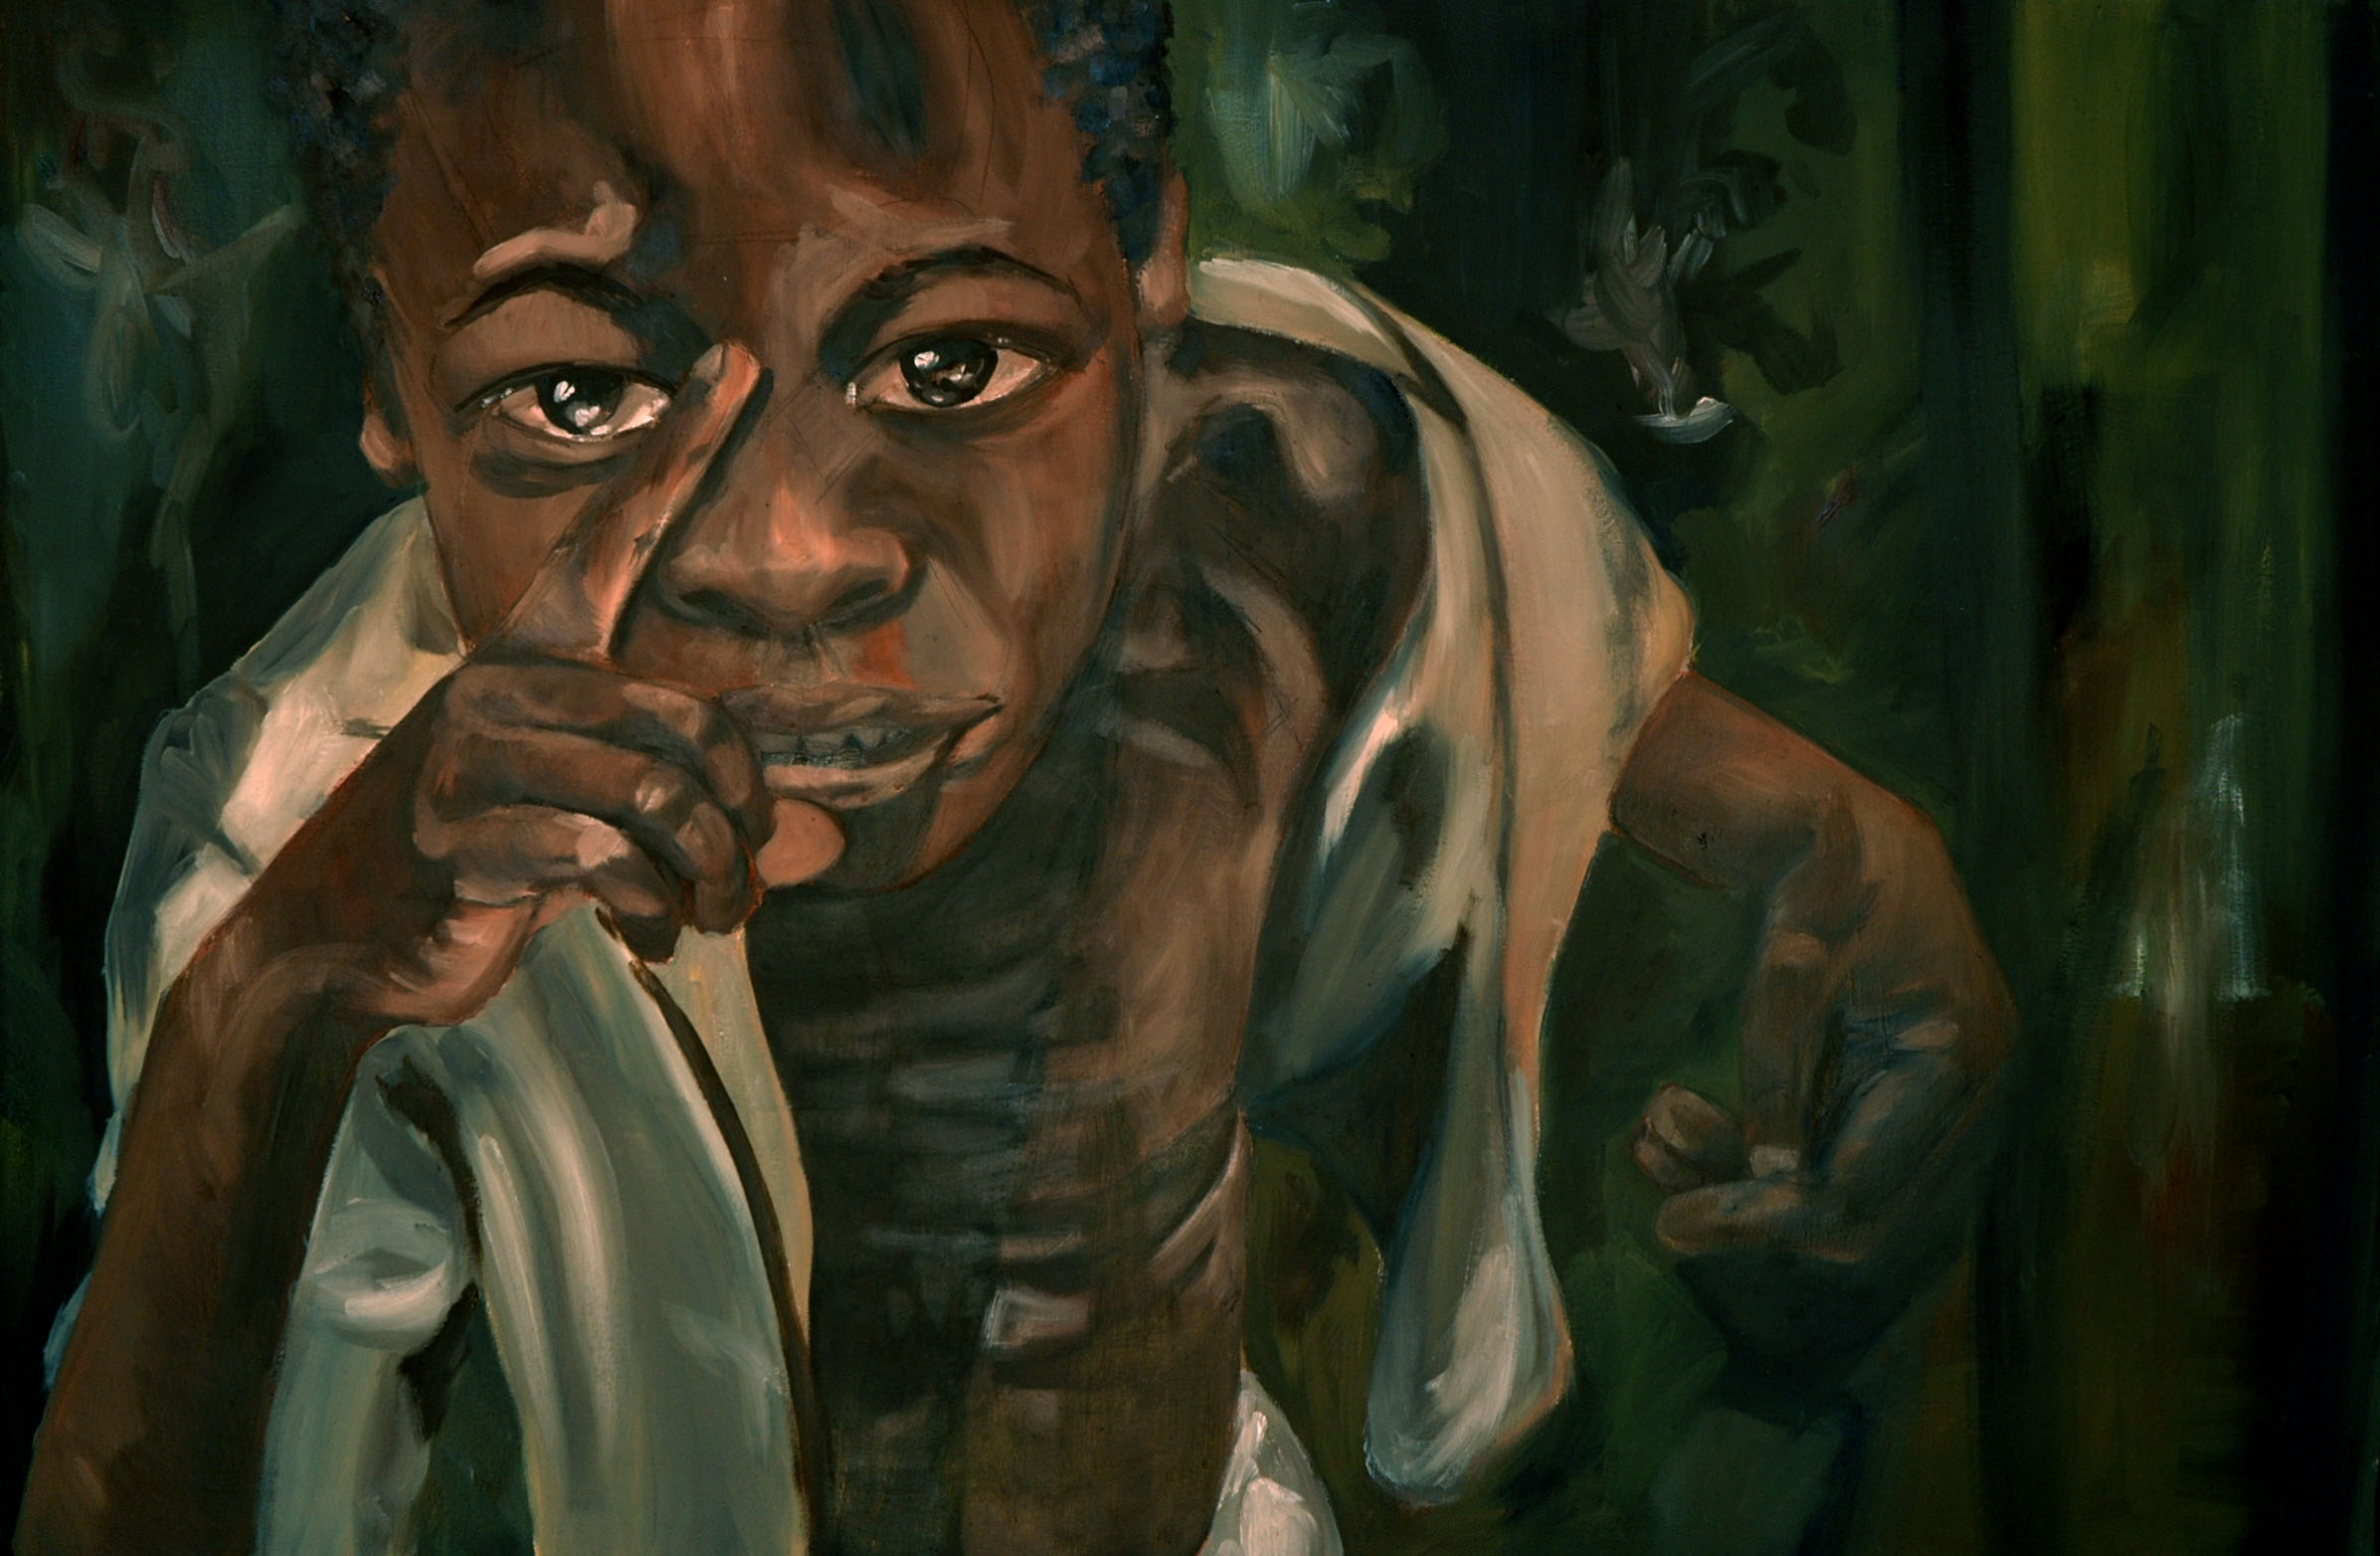 Malachi - Oil on Canvas